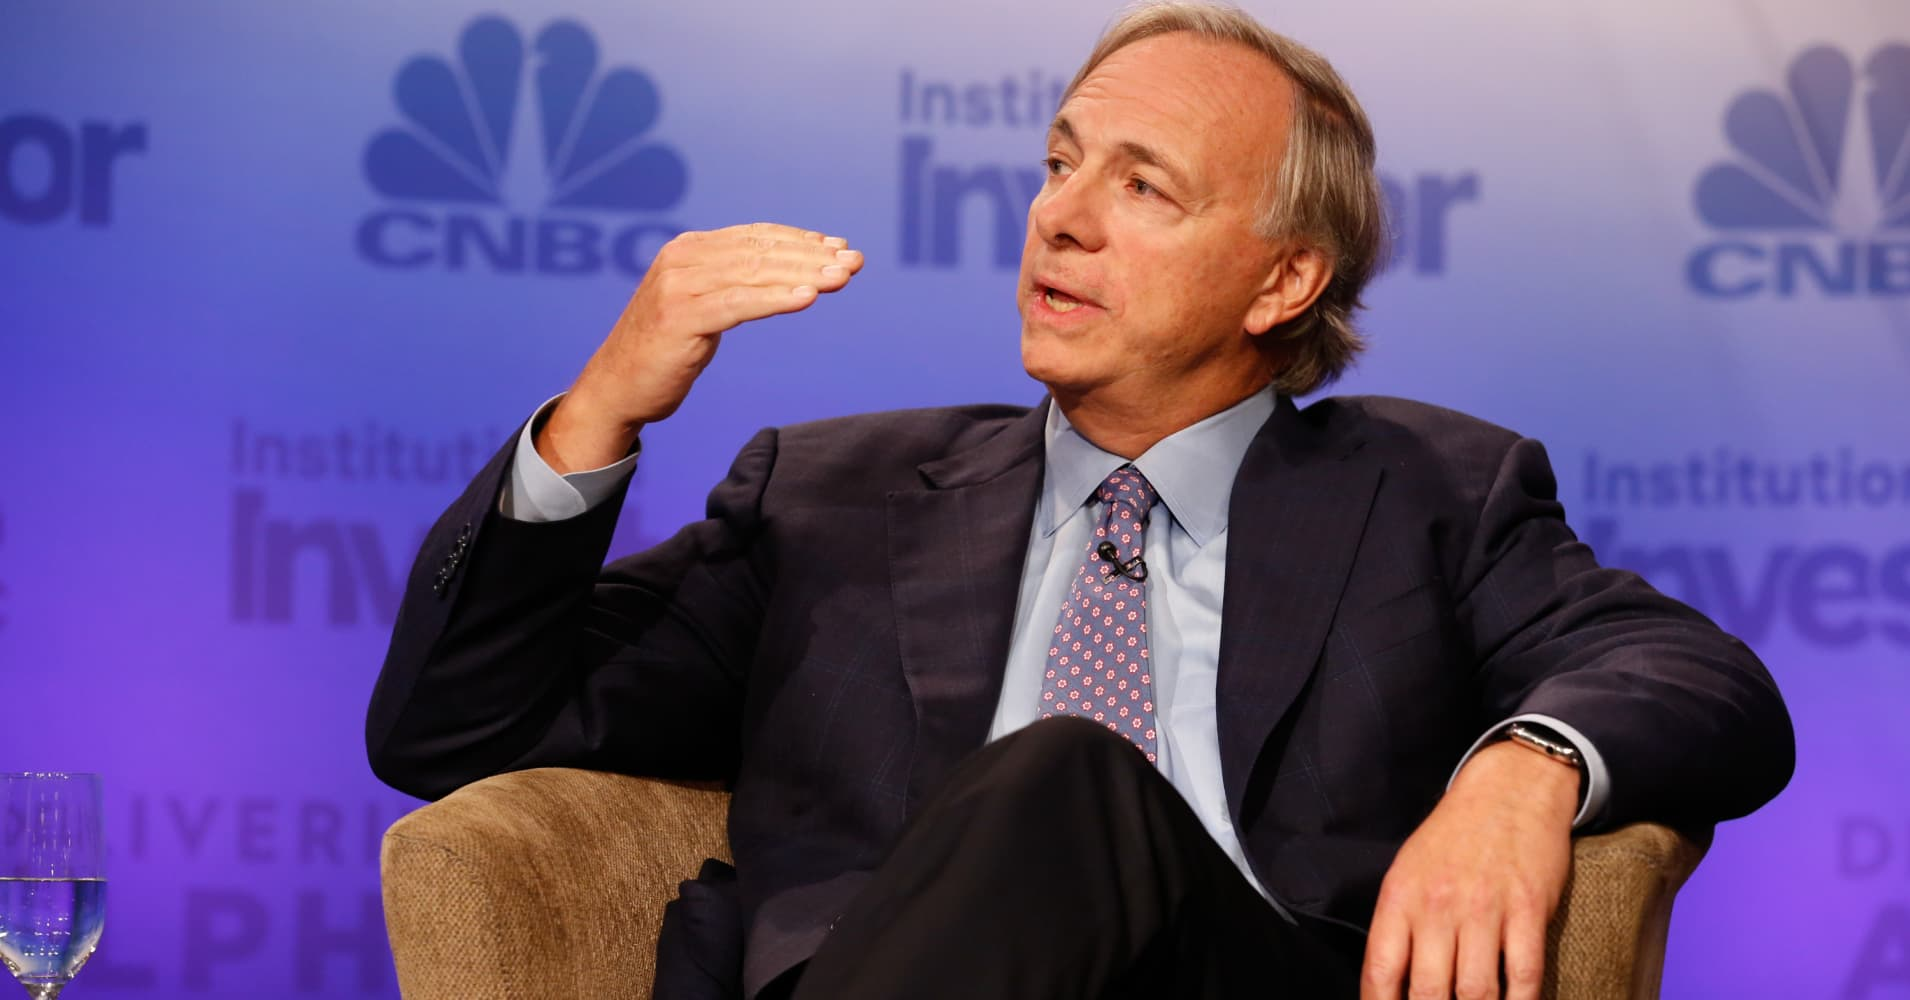 Ray Dalio speaking at the Delivering Alpha conference in New York on Sept. 13, 2016.